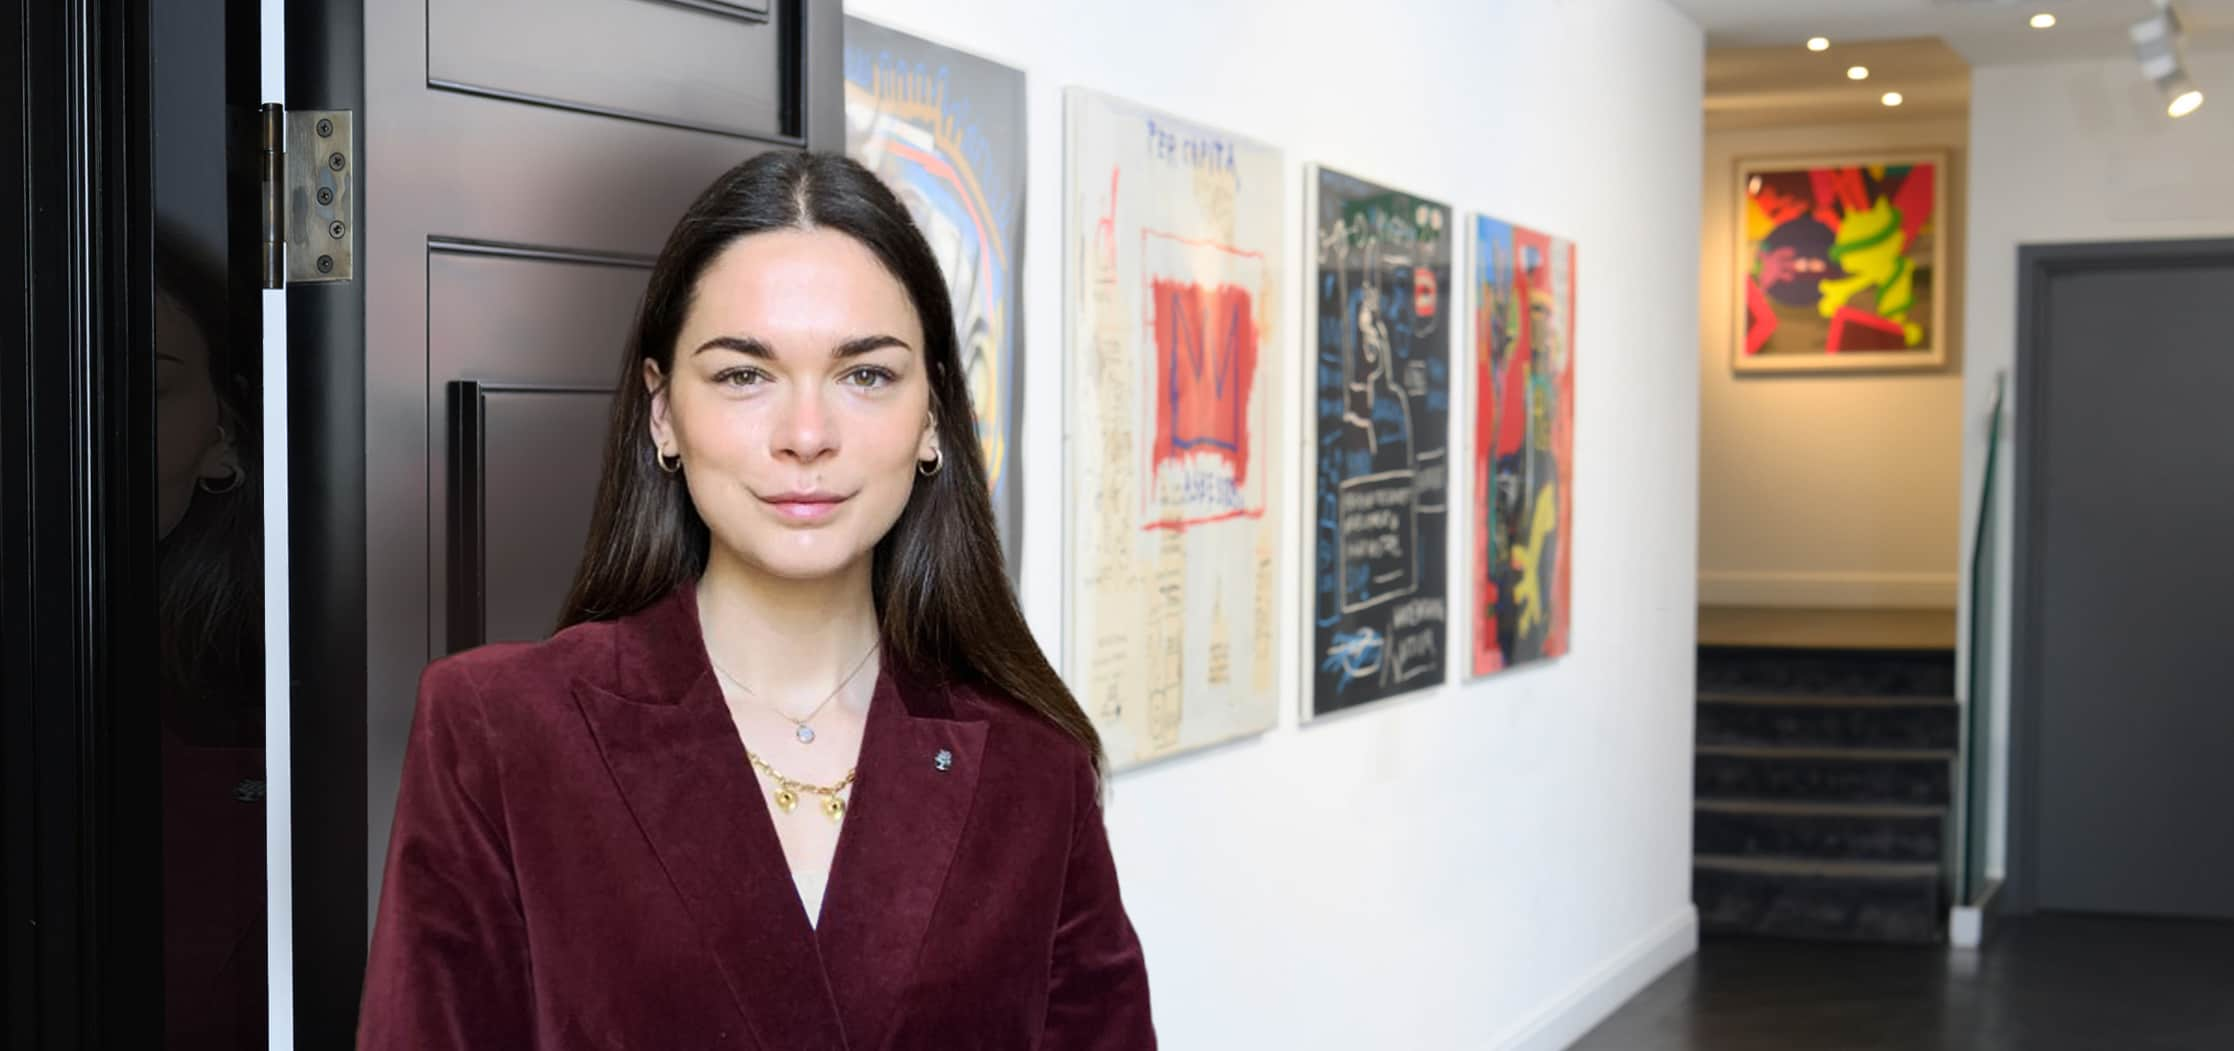 What I Collect and Why with Senior Art Consultant, Florence Whittaker , Maddox Gallery Senior Art Consultant, Florence Whittaker, considers...